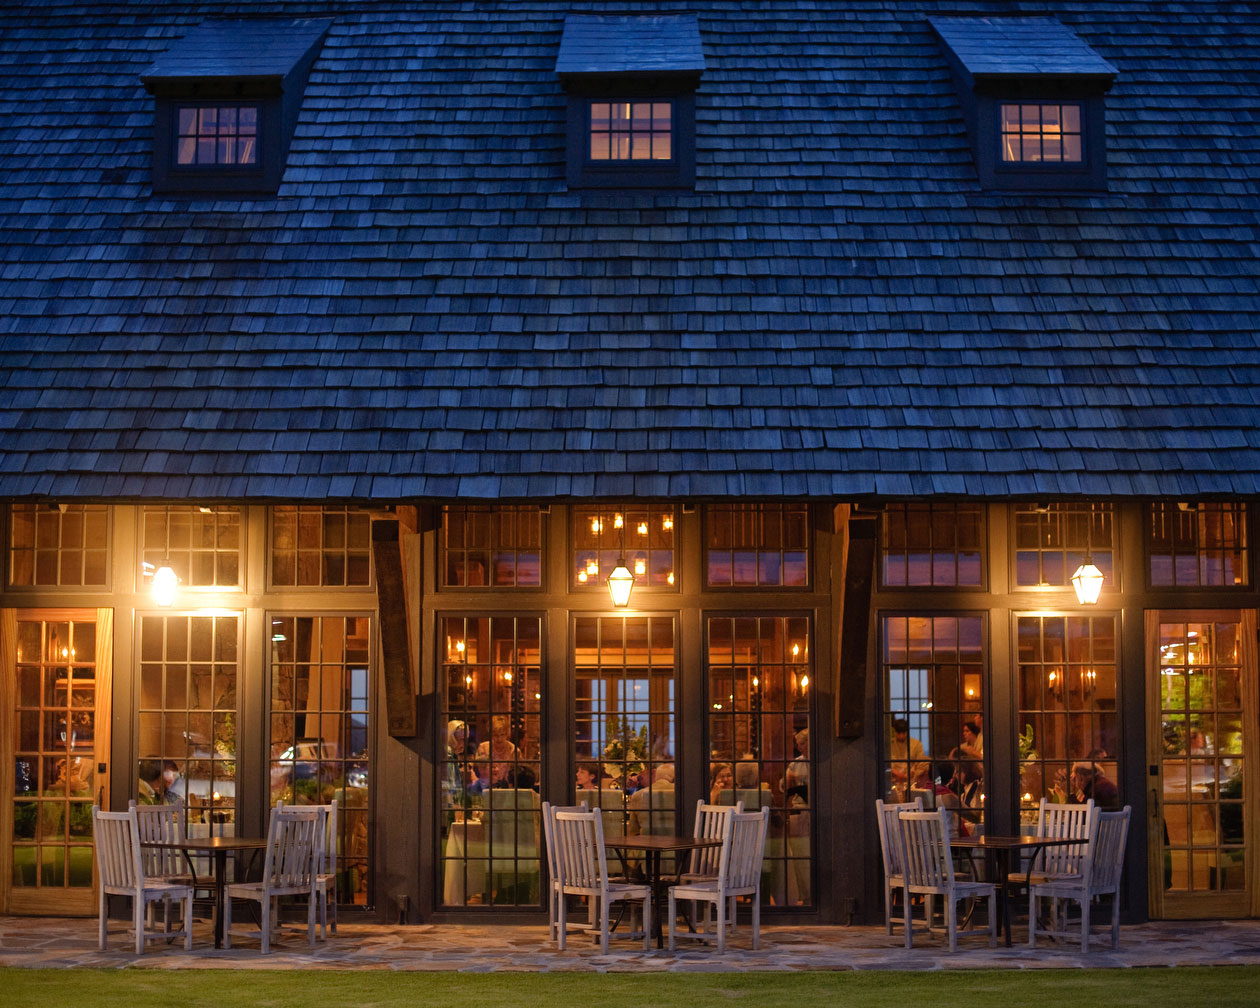 Springhouse Restaurant Alexander City Alabama